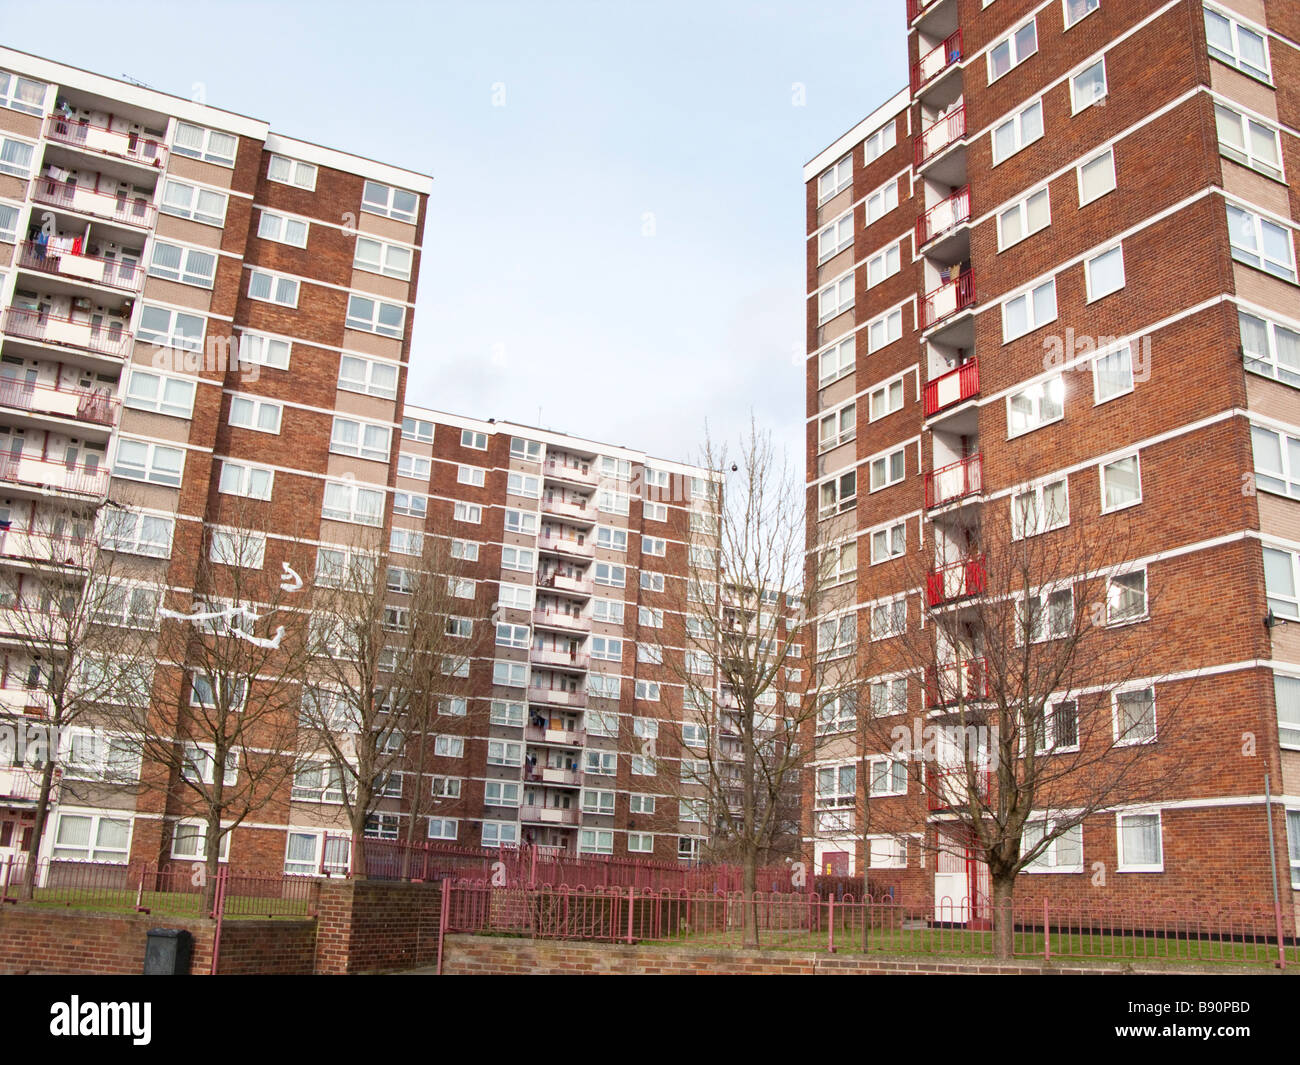 high rise tower blocks on an inner city estate in liverpool stock